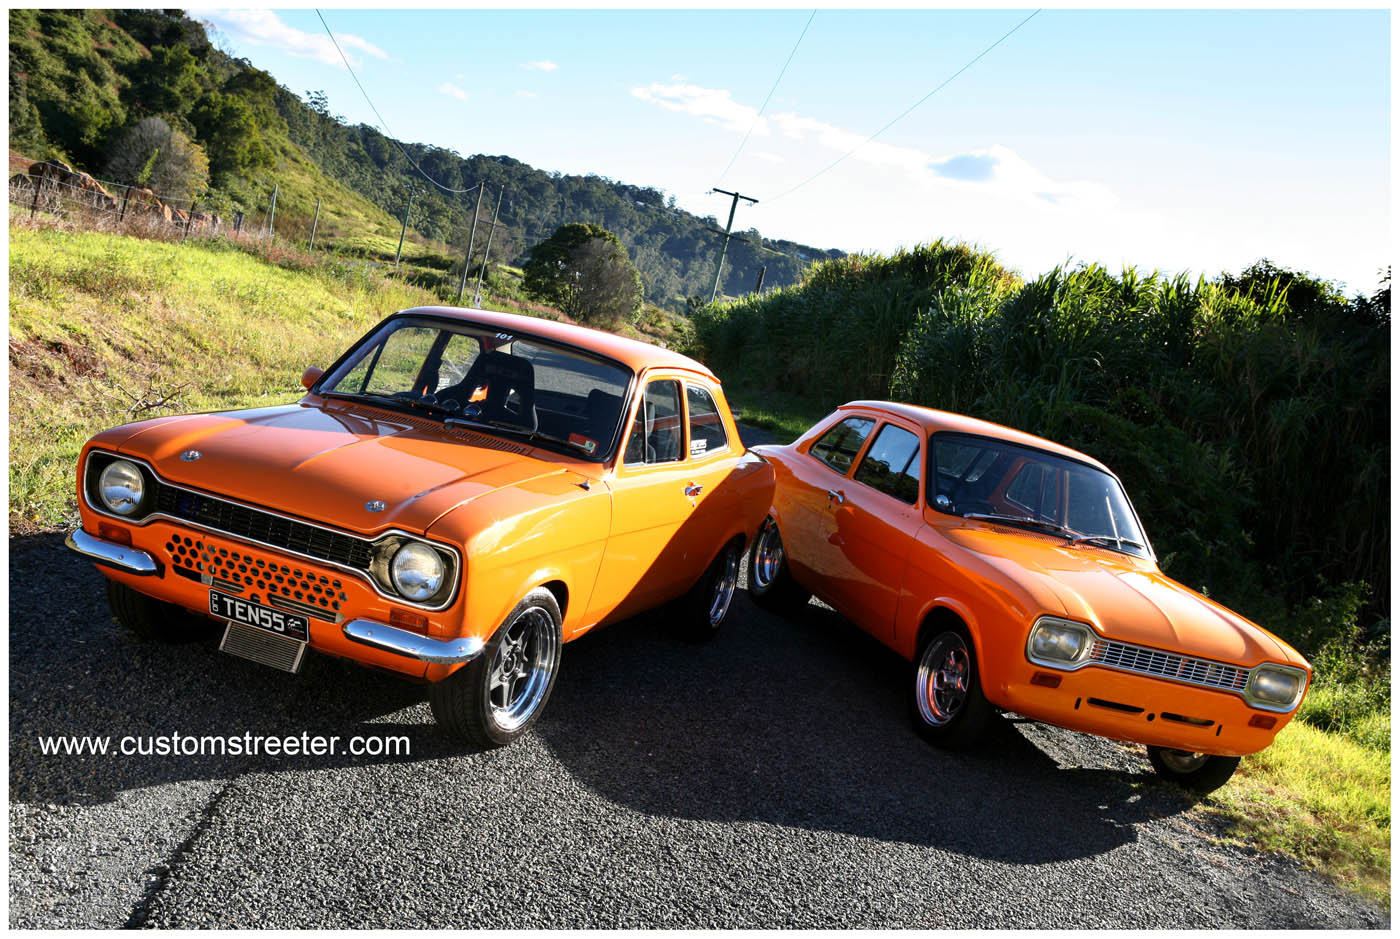 Old School British fun performance mixed with high tech Japanese Nissan turbo engine for the street plus a purpose built Pinto powered drag car. Ford Mk1 Escort, Escorts seen in Fast 6 and Wheeler Dealer